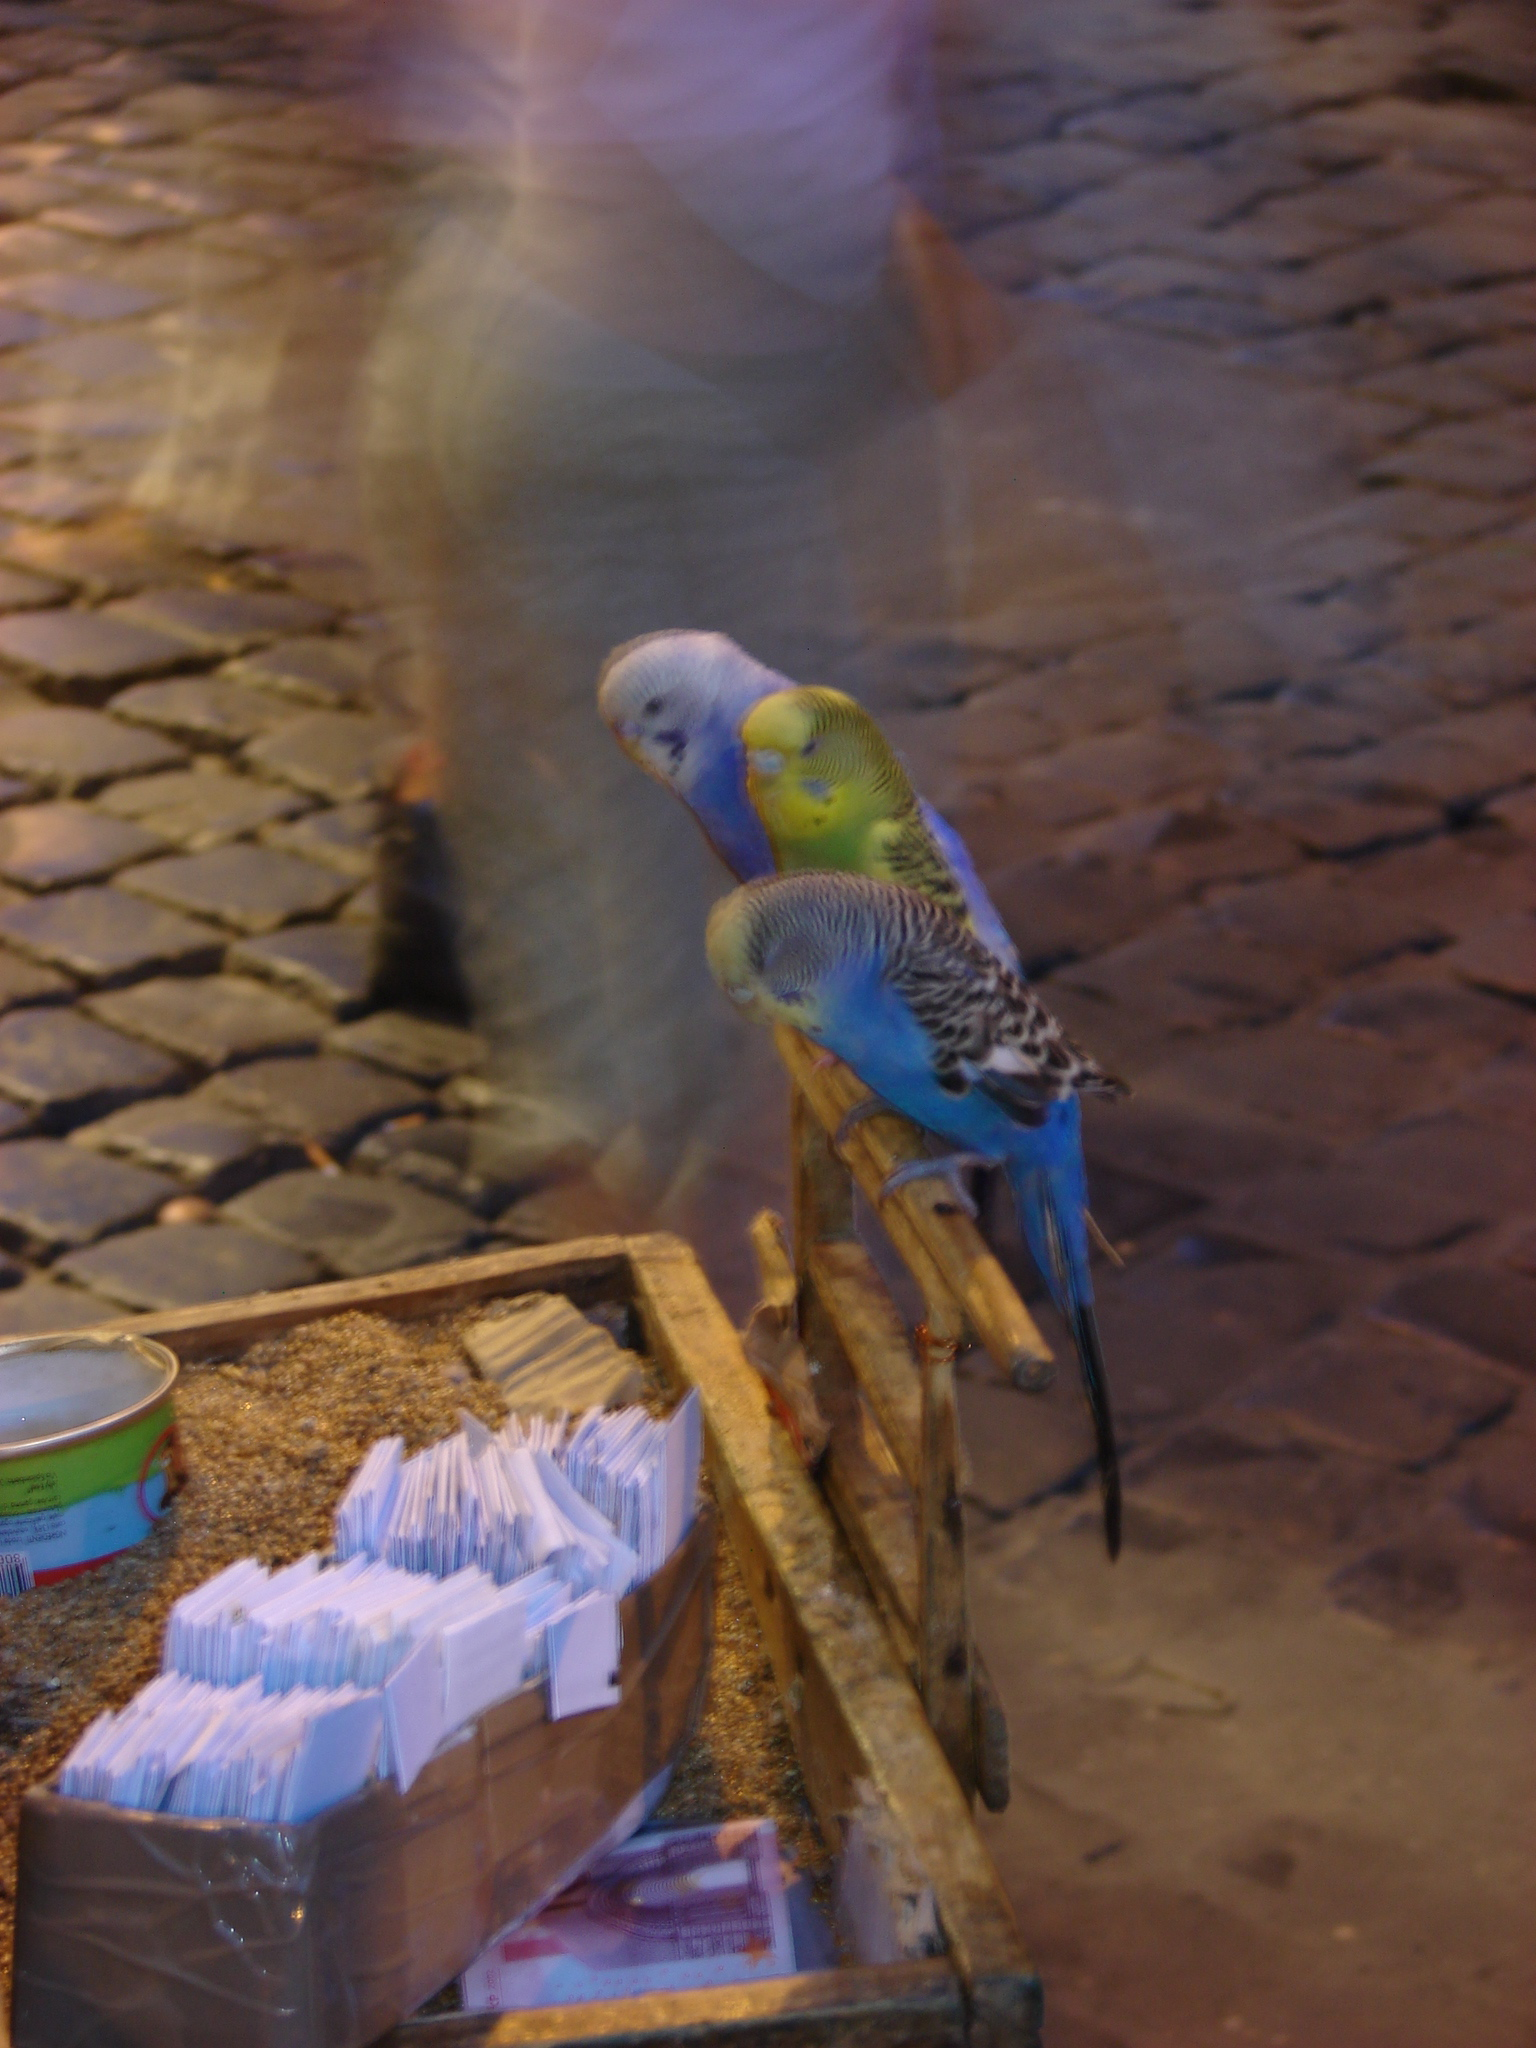 Fortune-telling parakeets. Antonio is in the front.